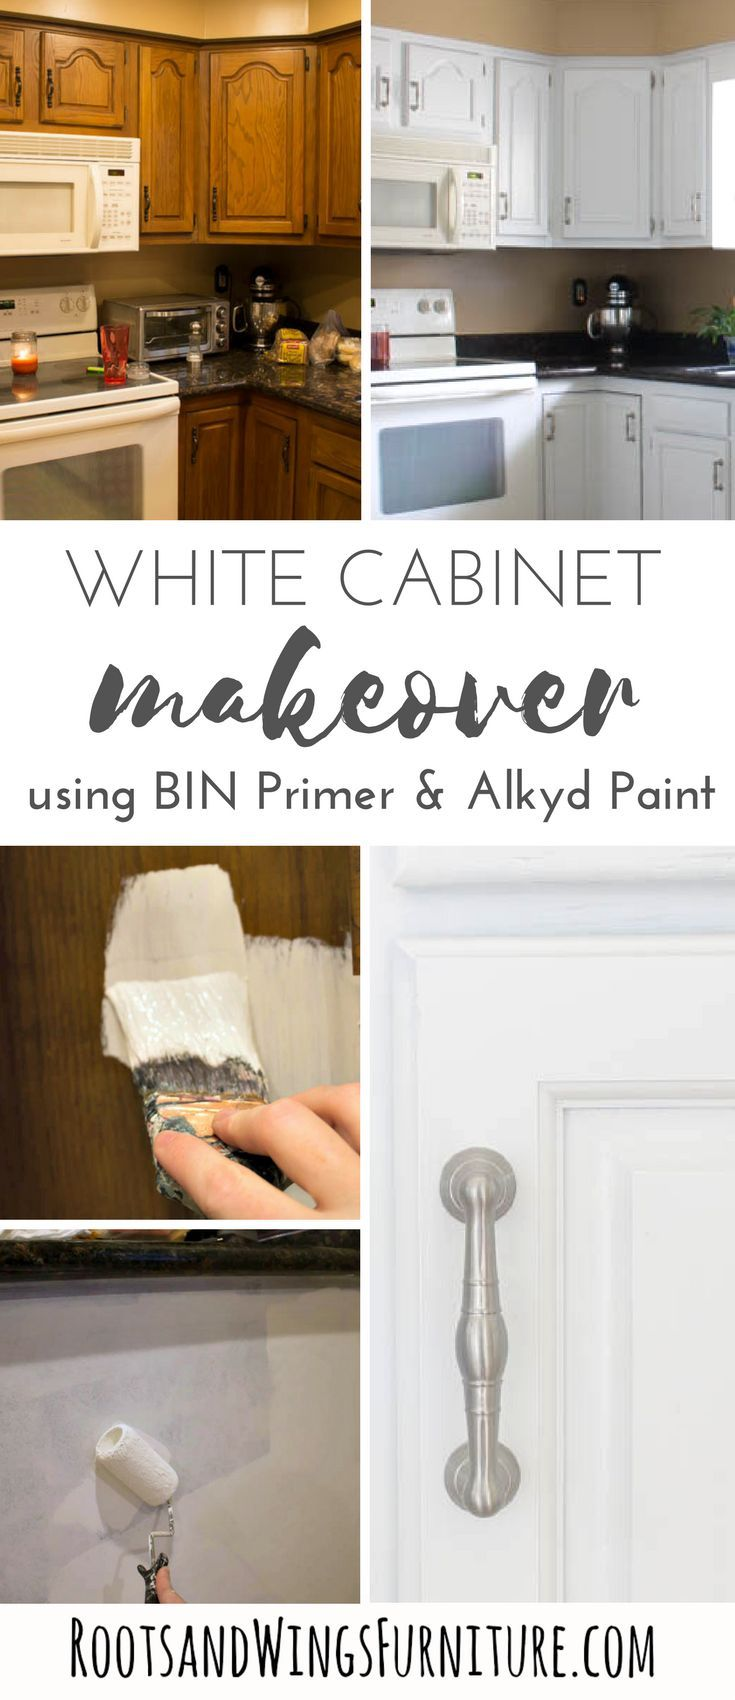 How To Paint Your Kitchen Cabinets White Roots Wings Furniture Llc Painting Oak Cabinets Cabinetry Design Painting Furniture Diy